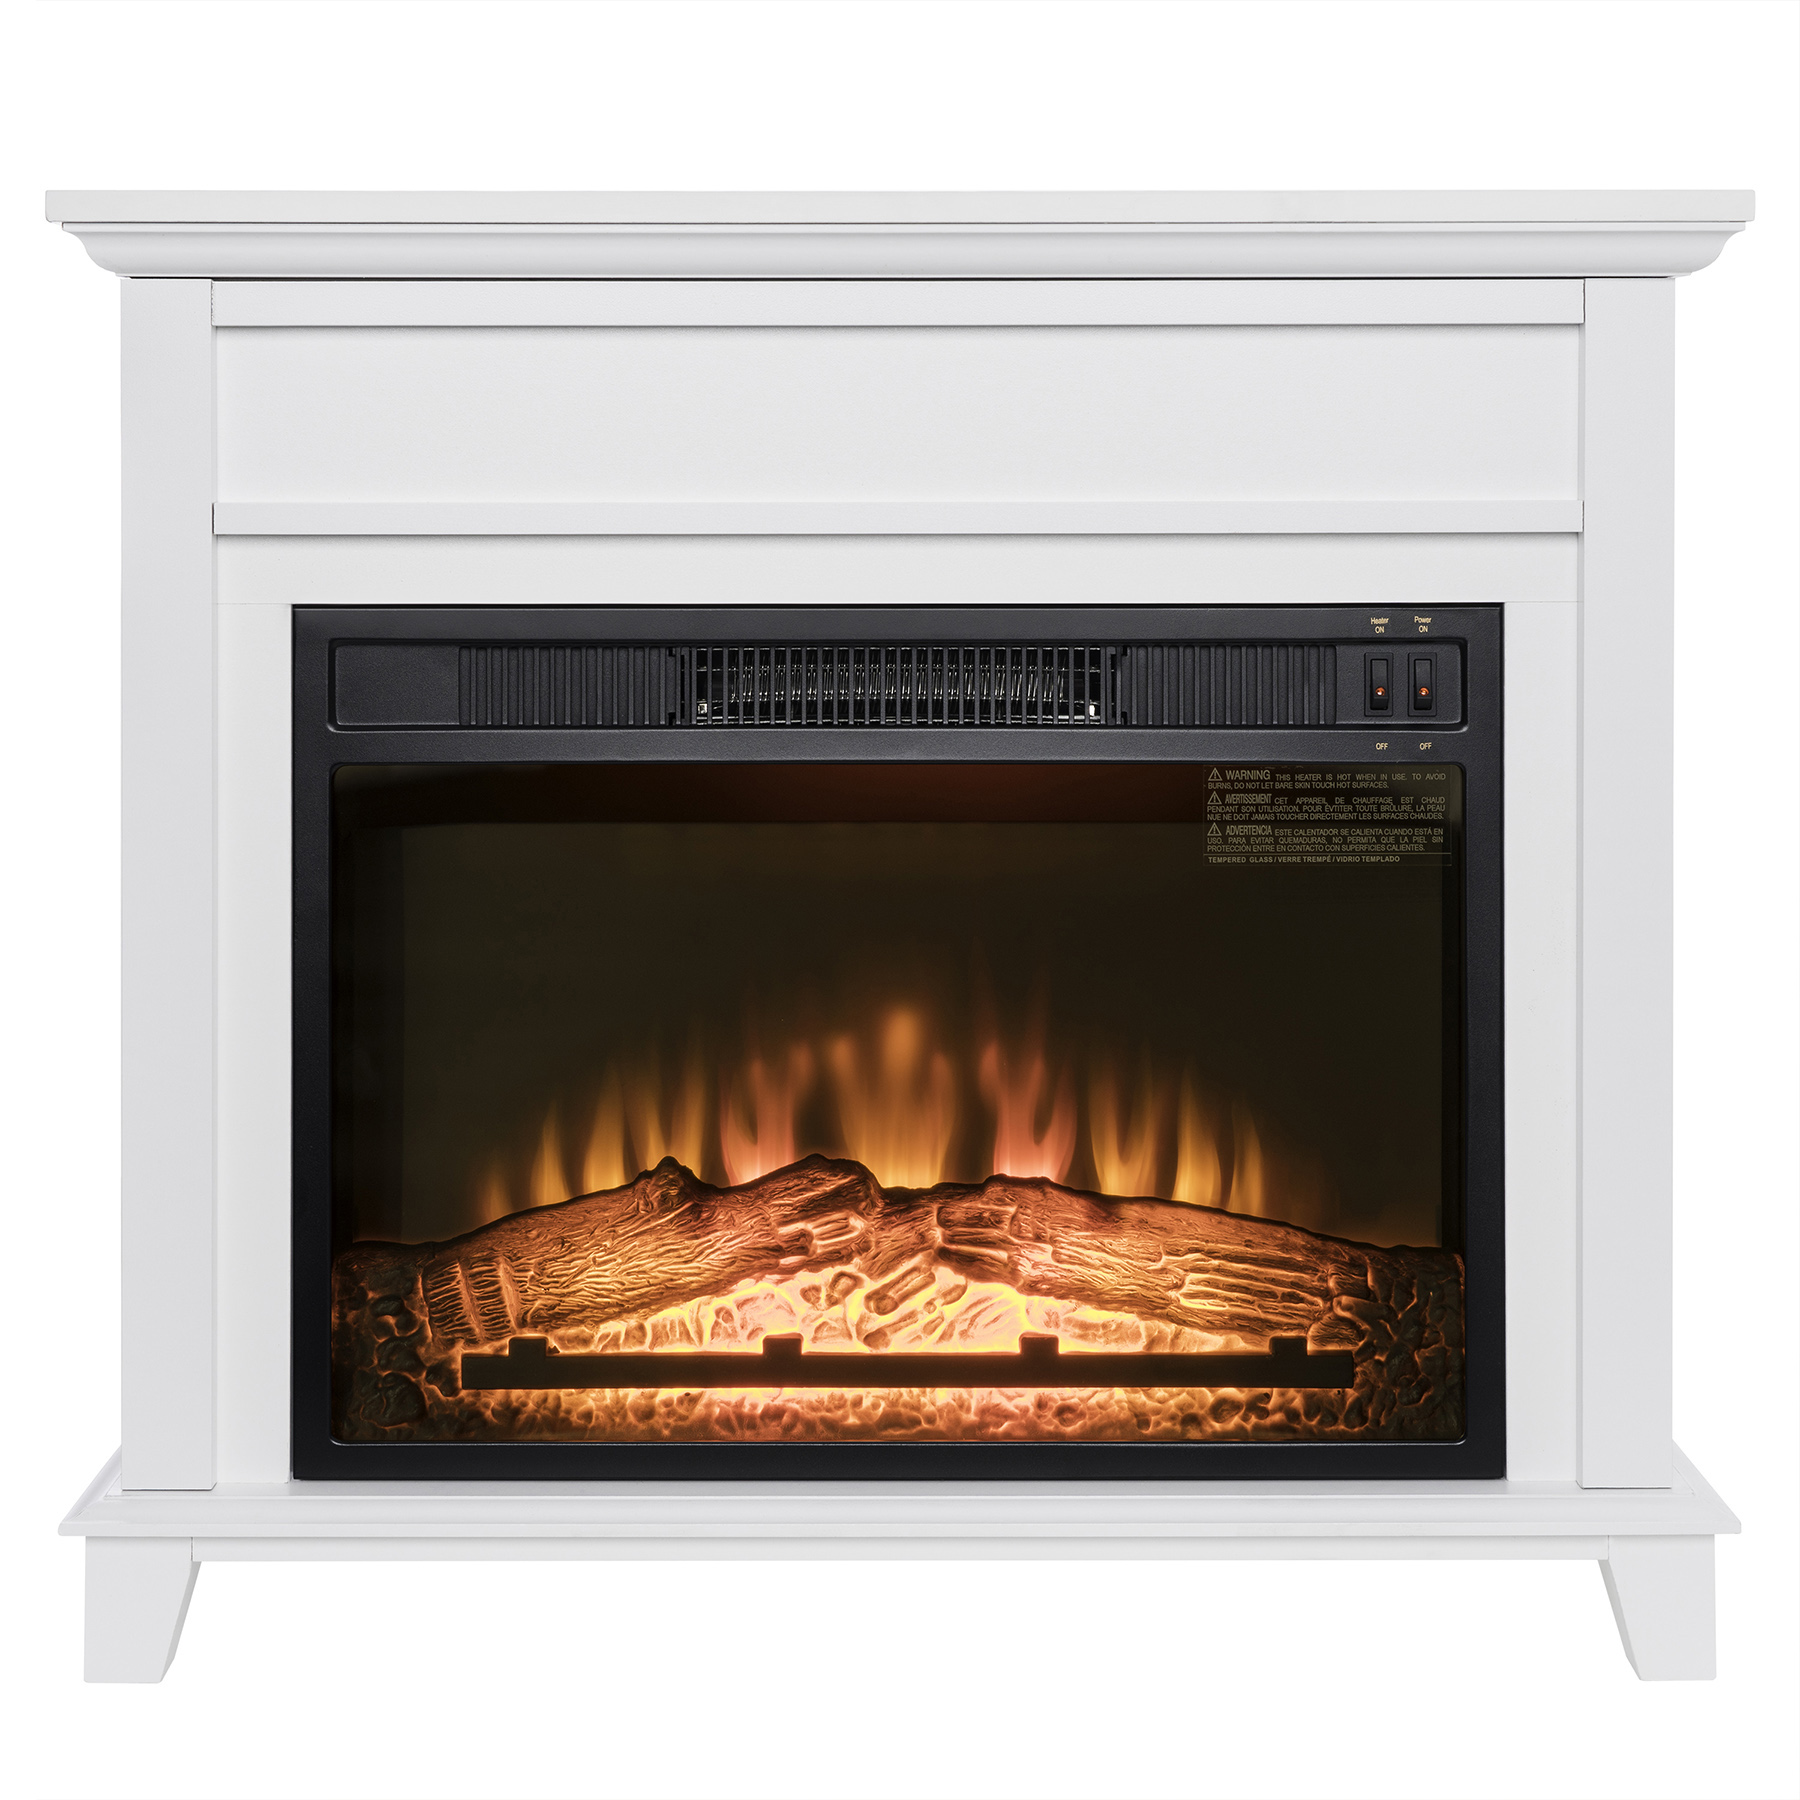 Bedroom Fireplace Heater Akdy Akdy 32 Quot Freestanding White Wooden Mantel Log Bed